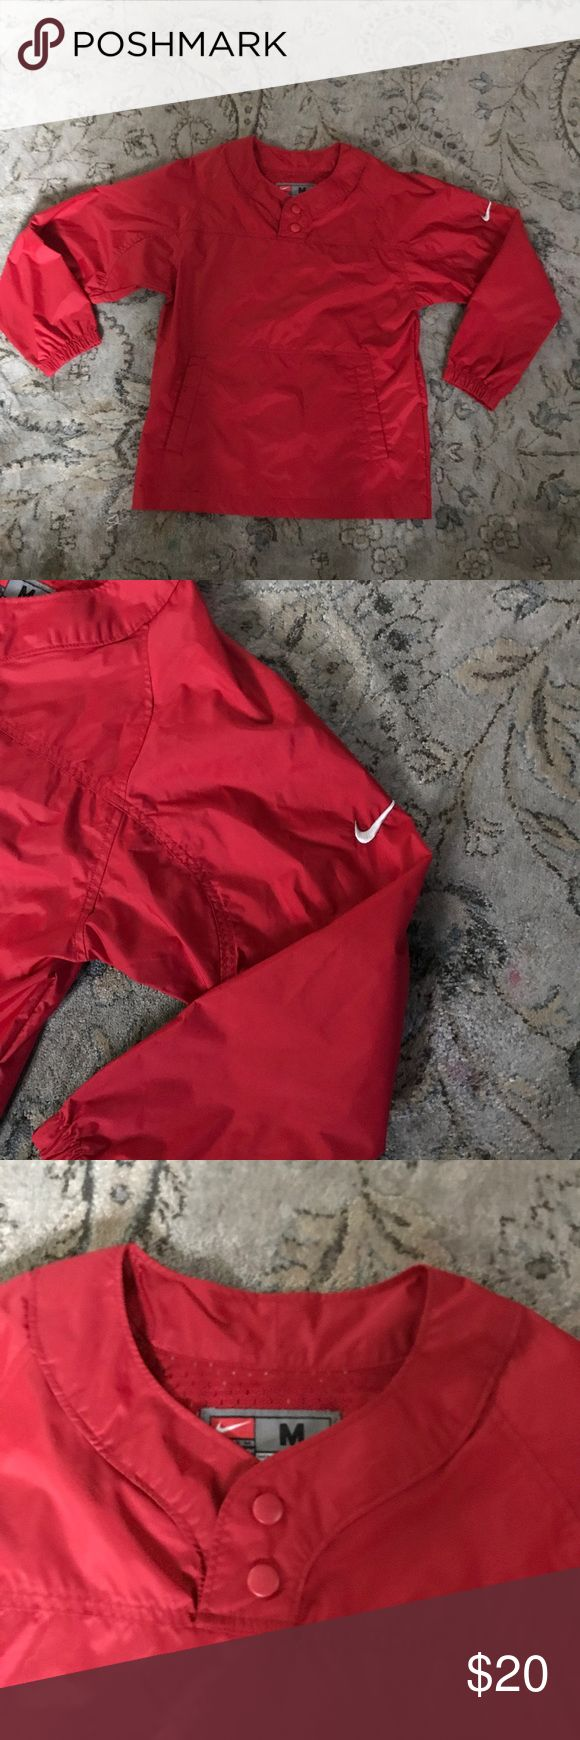 Red Nike team windbreaker Never worn Nike team jacket. Has two front pockets size 10-12 Nike Jackets & Coats Raincoats